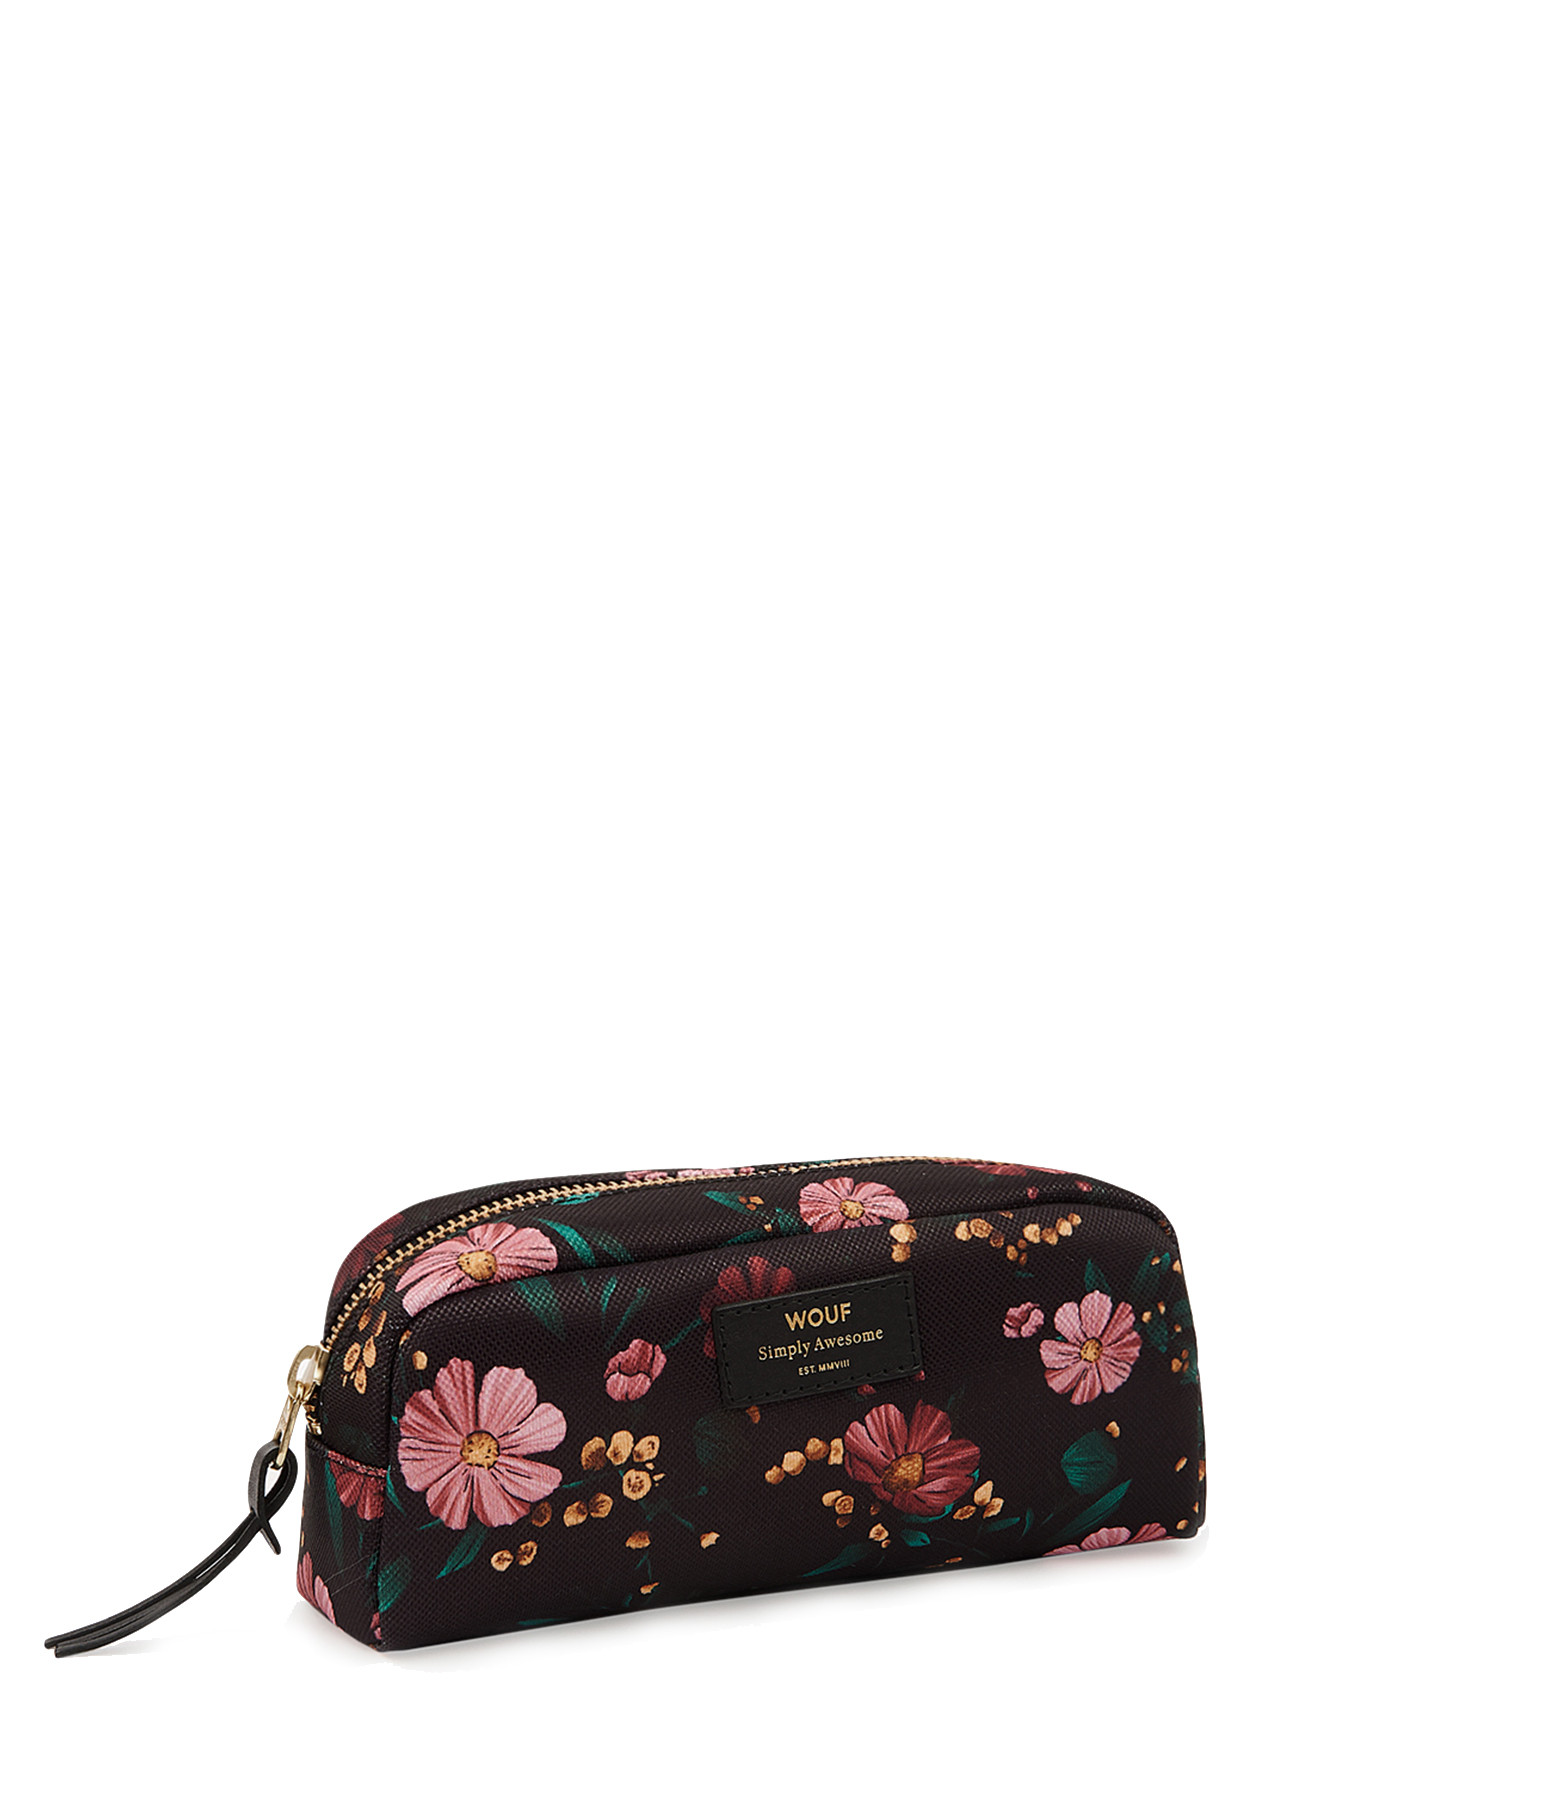 WOUF - Trousse Small Beauty Black Flowers